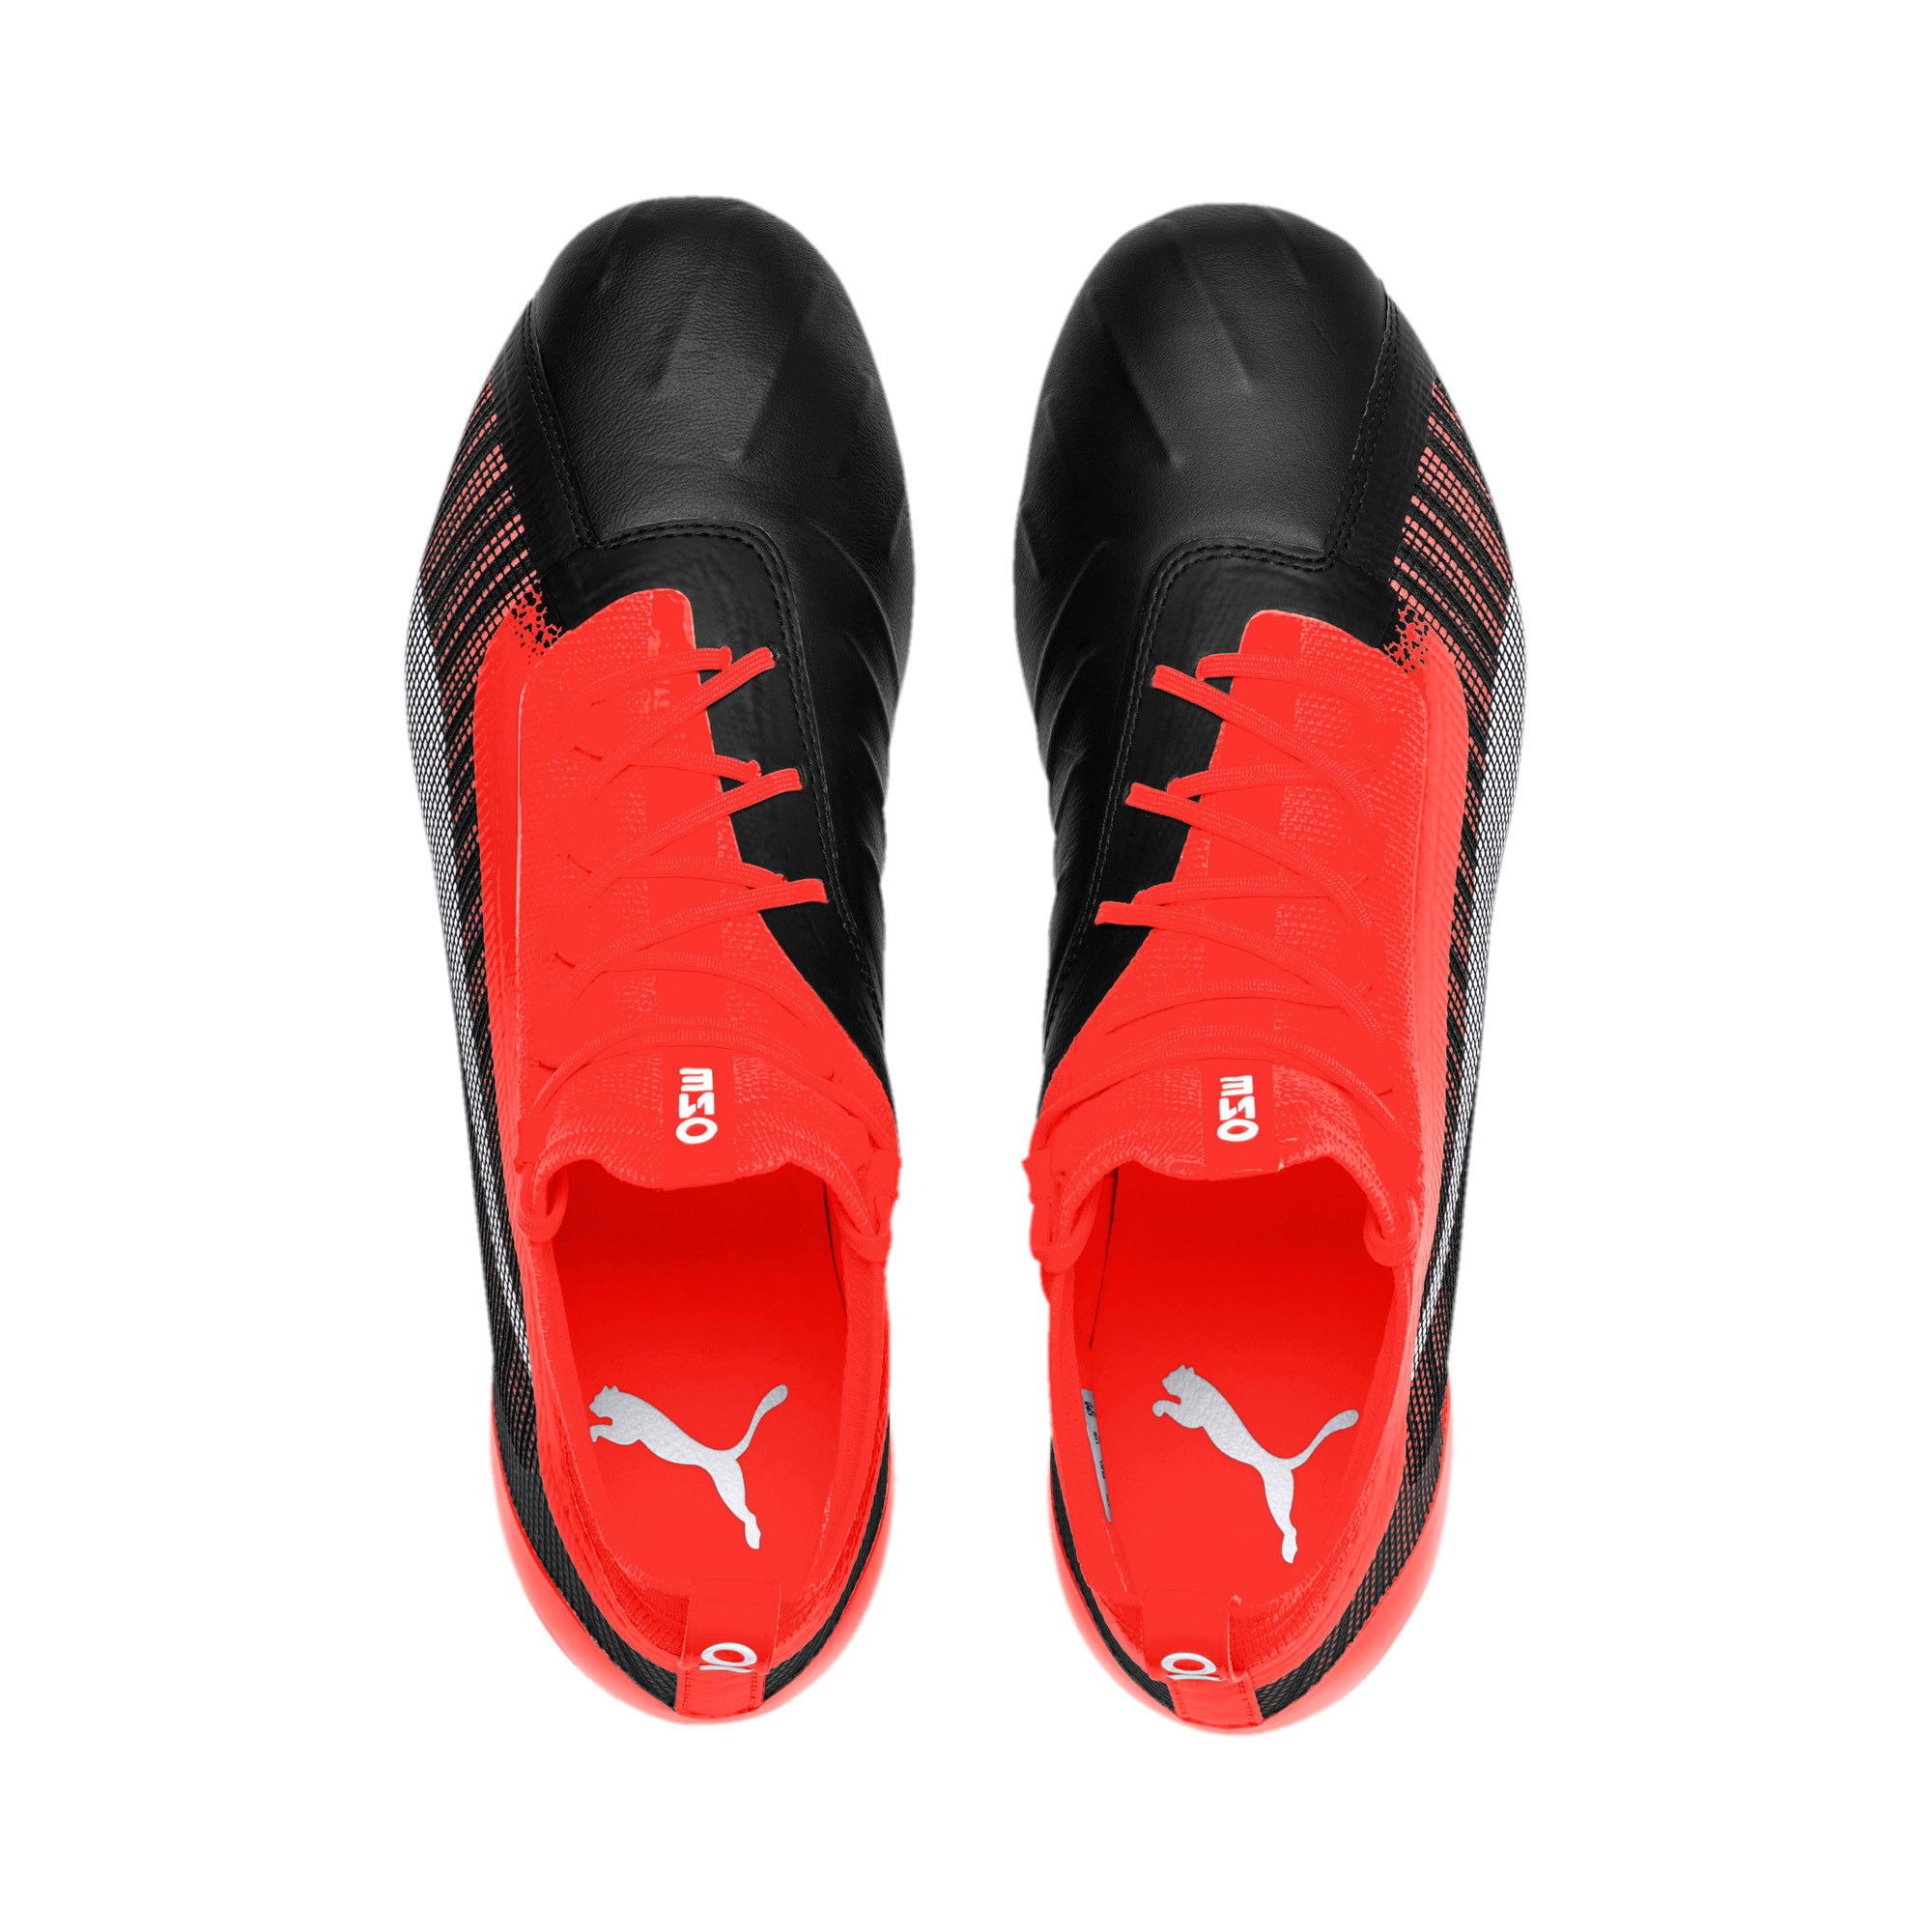 Thumbnail 7 of PUMA ONE 5.1 evoKNIT FG/AG Herren Fußballschuhe, Black-Nrgy Red-Aged Silver, medium